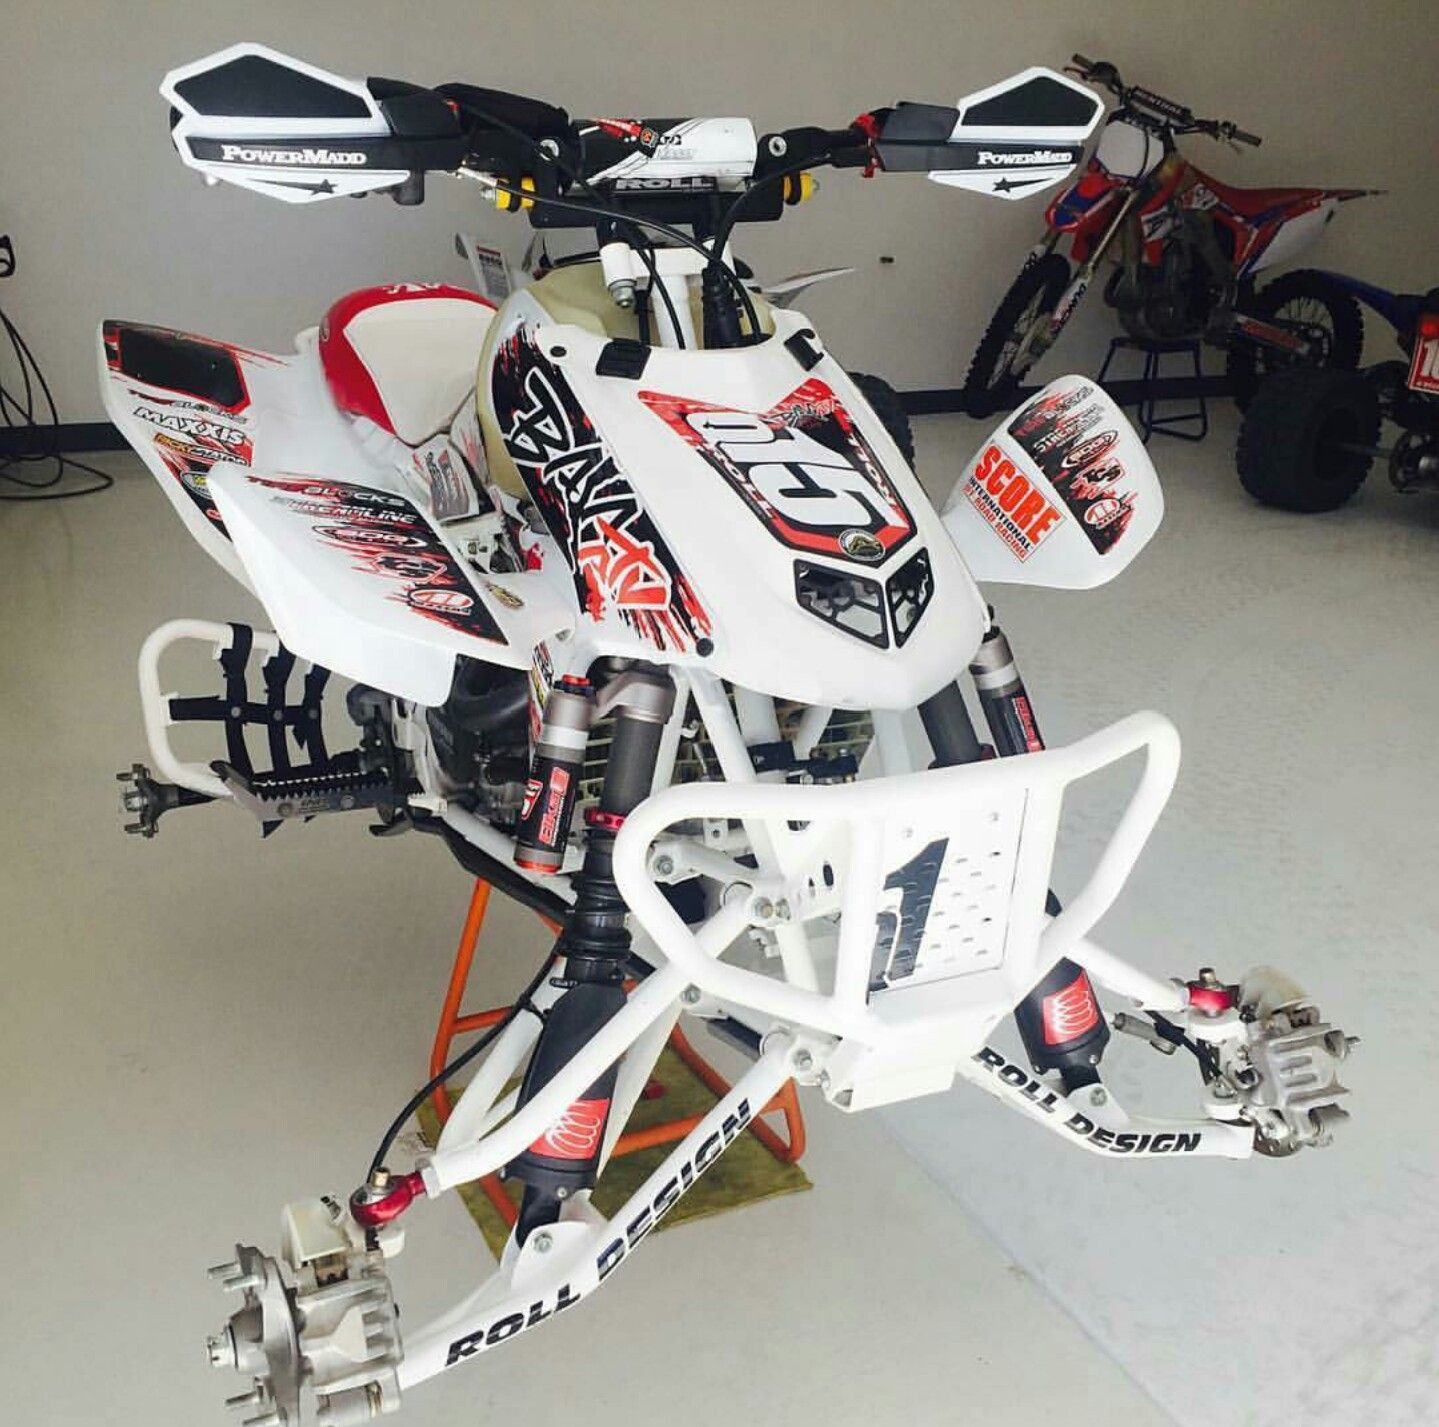 Roll Design Trx450r With Images Atv Quads Atv Motocross